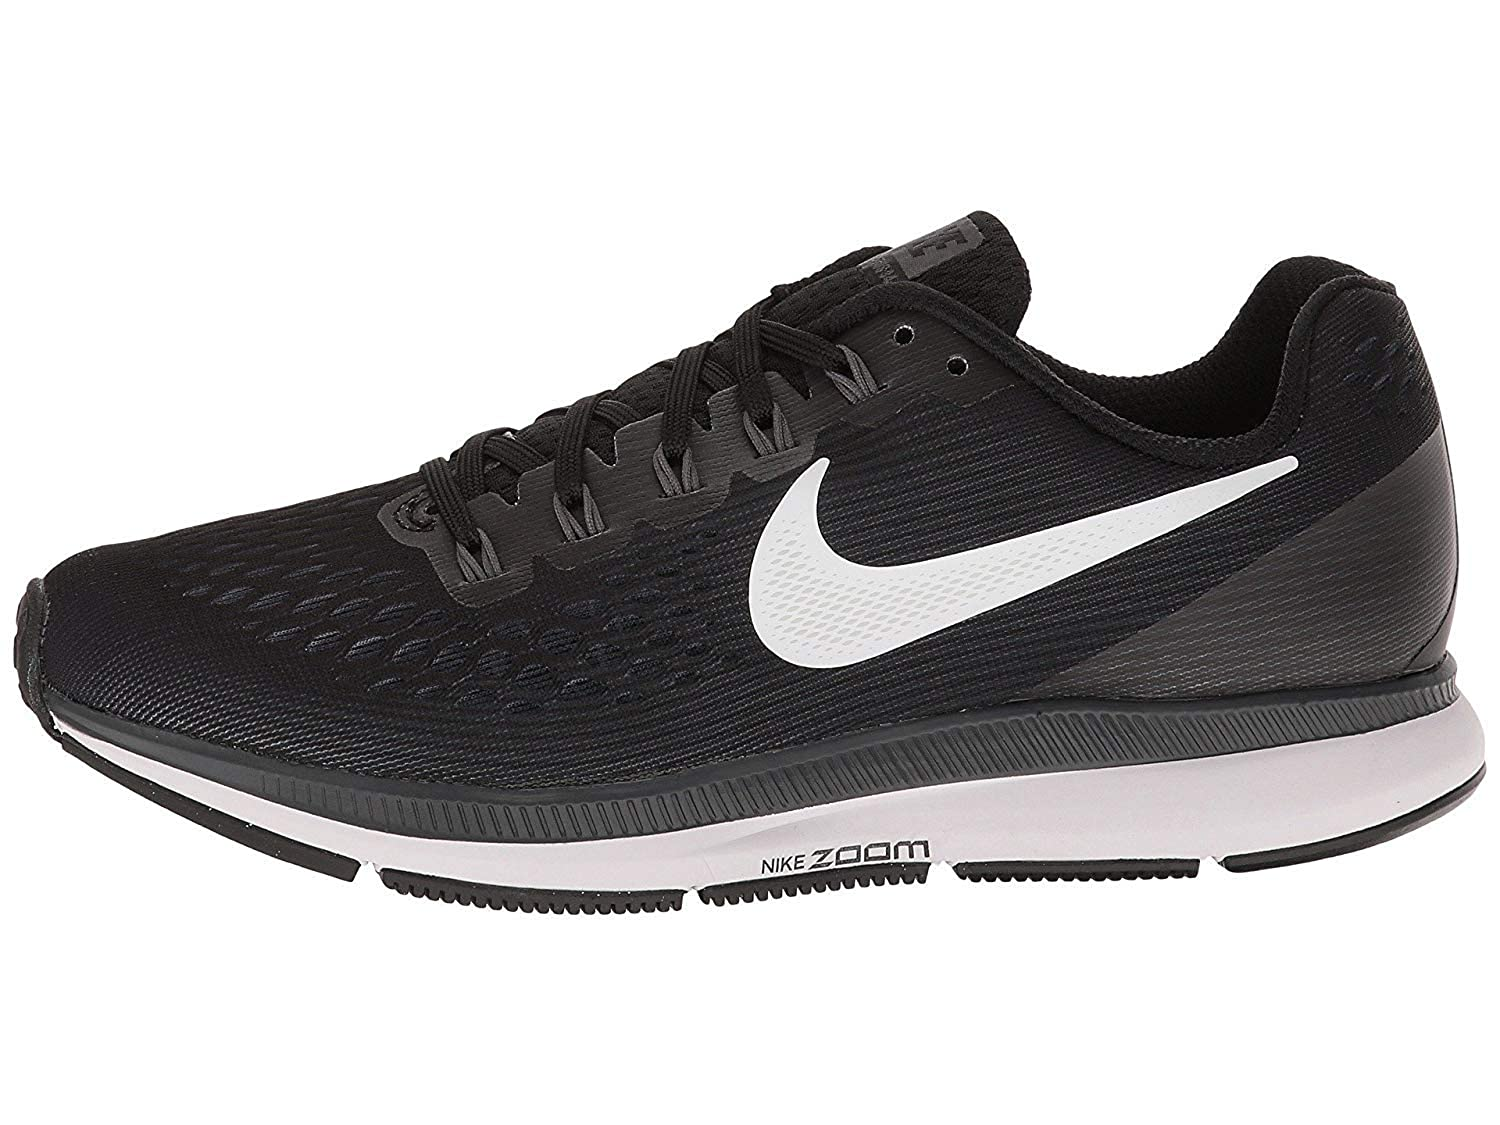 quality design 7b670 7181a Amazon.com   Nike Women s Air Zoom Pegasus 34 Running Shoe Black White Dark  Grey Anthracite Size 10   Fashion Sneakers